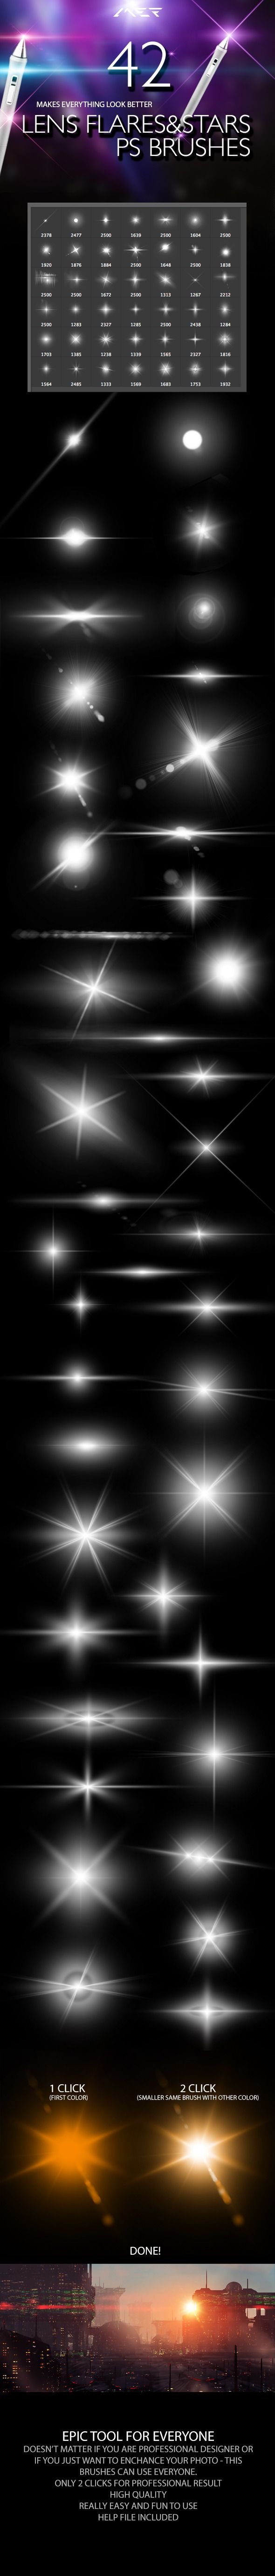 Lens Flares & Stars Photoshop Brushes Photoshop #ps #brushes Download: http://graphicriver.net/item/lens-flares-stars-photoshop-brushes/10493335?ref=ksioks